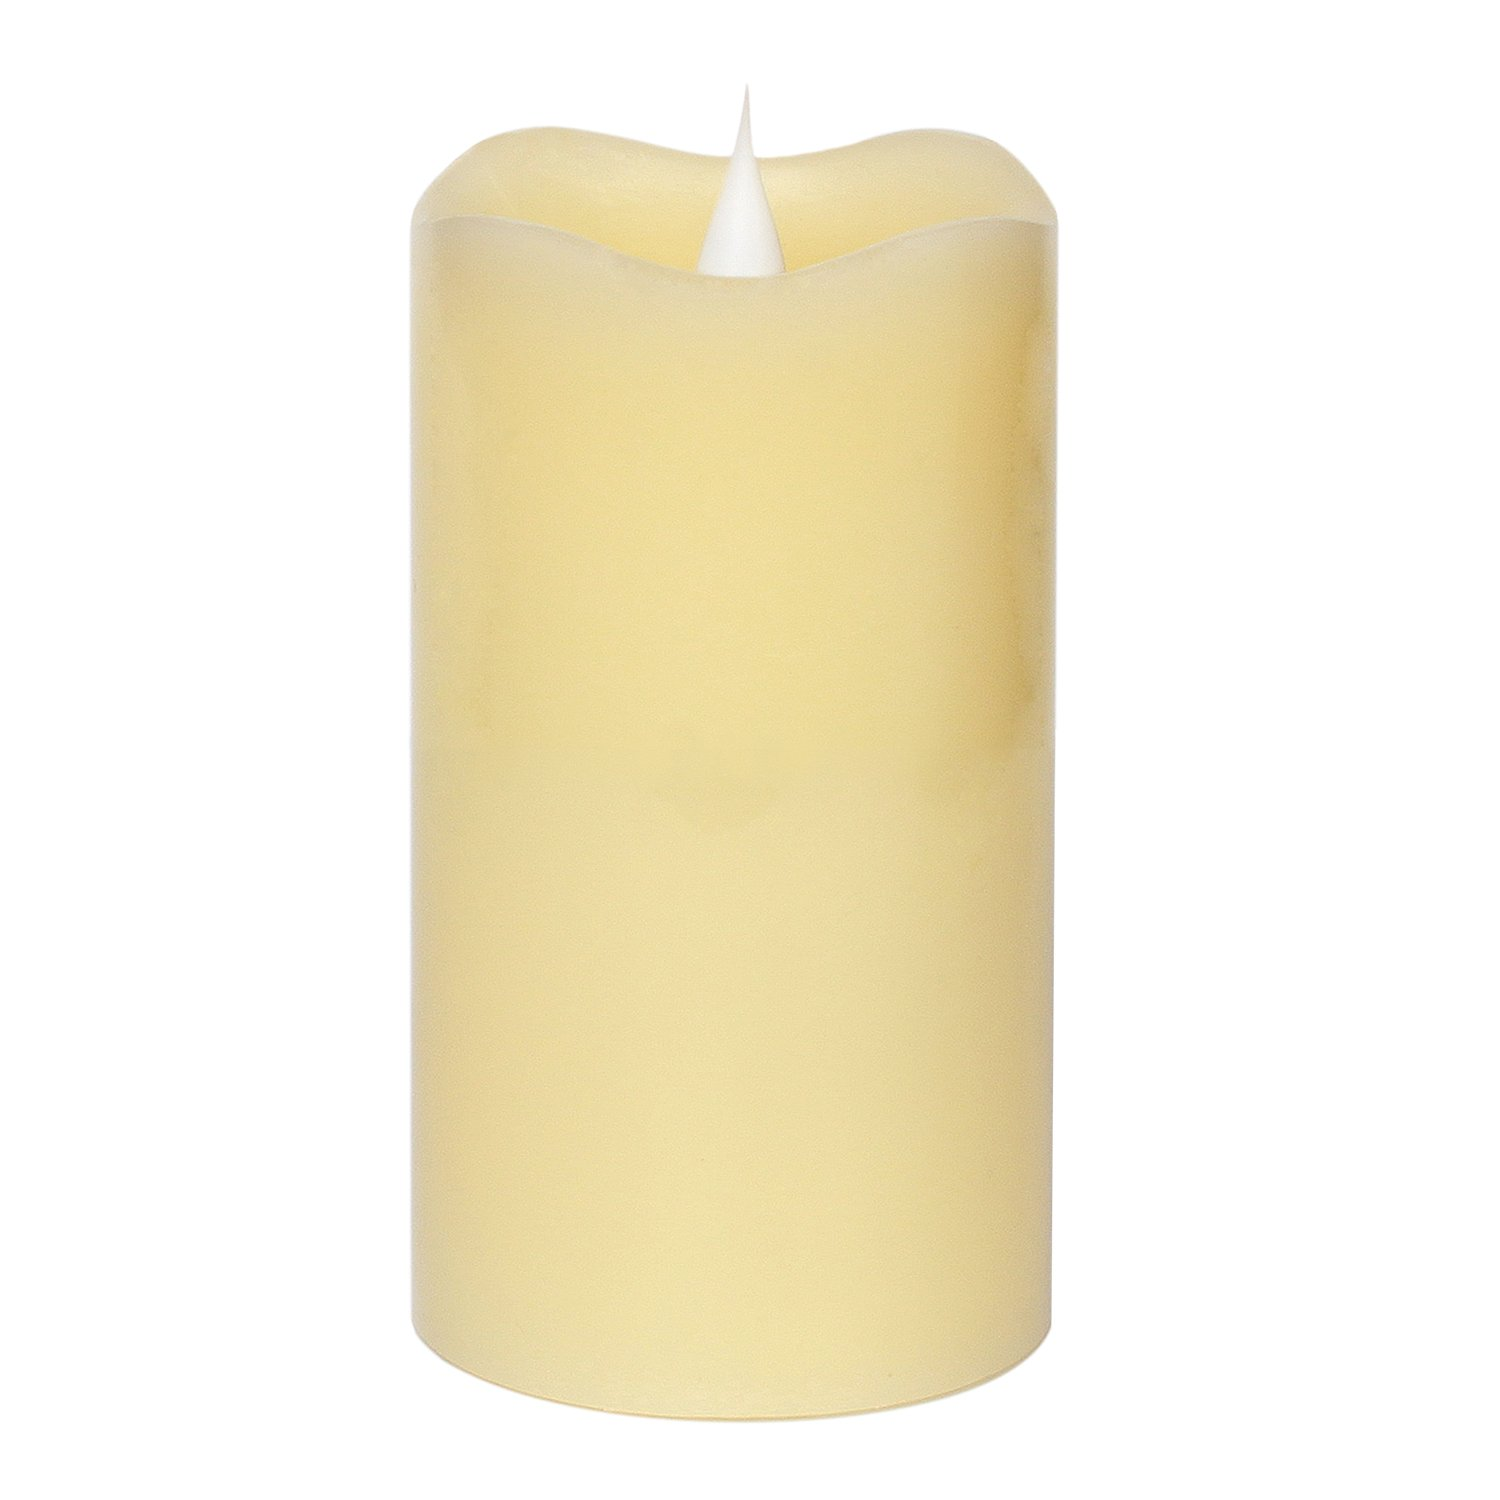 3D Moving Flame Led Candle With Timer, Pillar Flamless Candle for Christmas Decoration, 3x5 Inch, Ivory GiveU LM13004